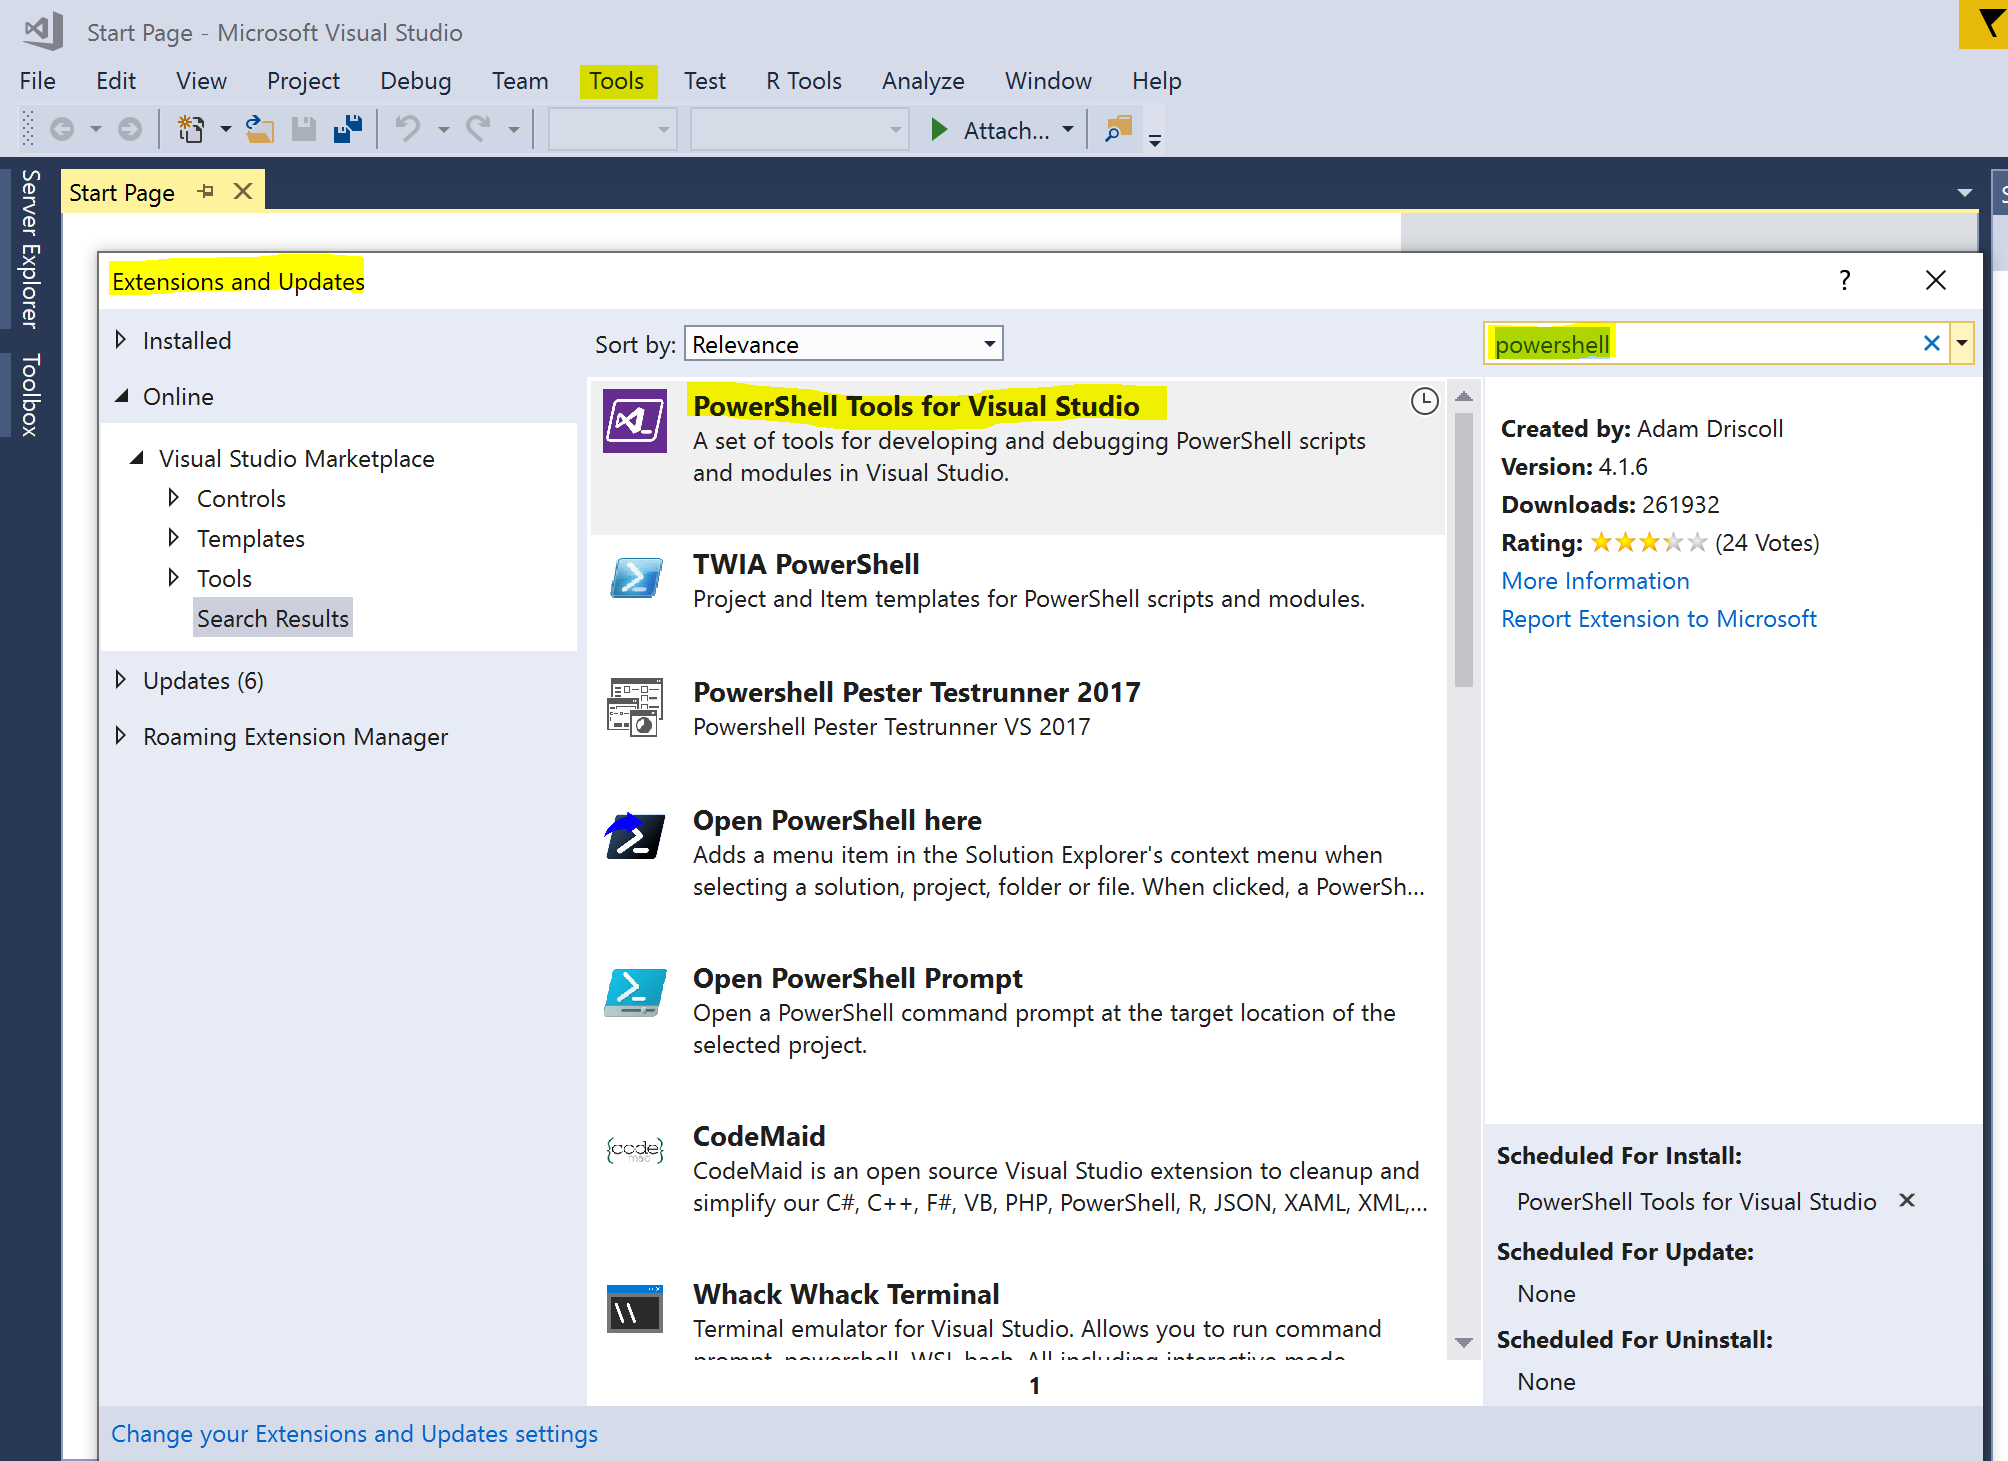 Can we use code to call azure powershell cmdlet/scripts in